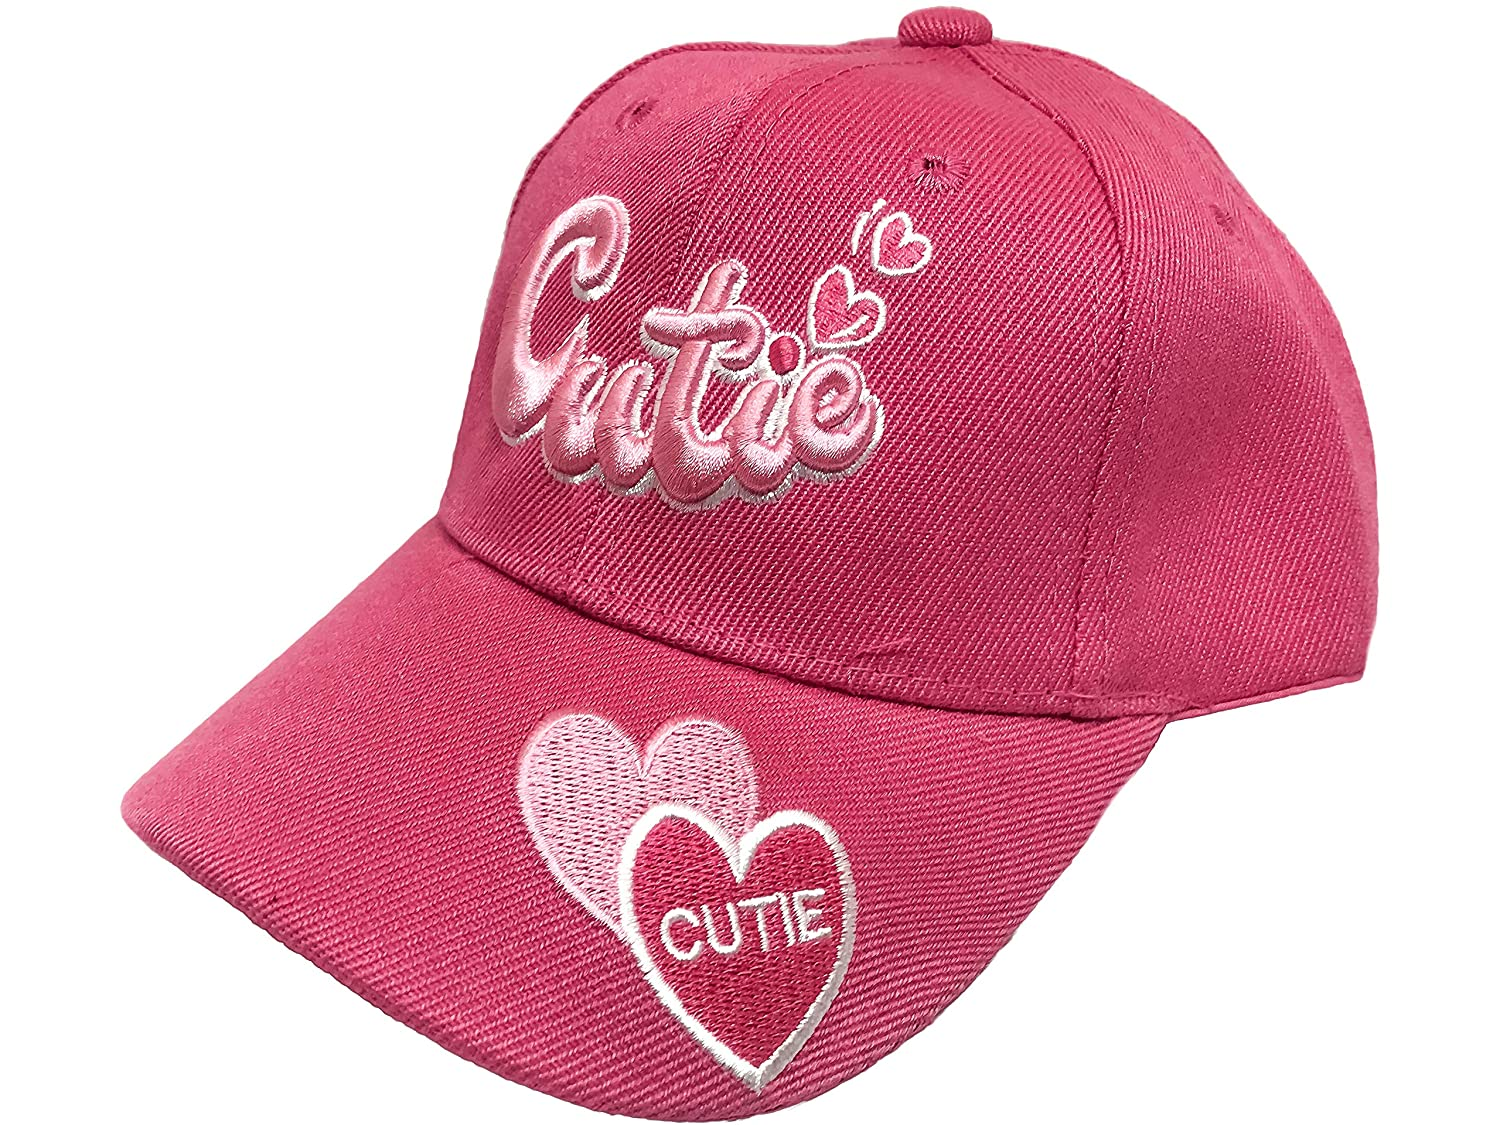 Black Duck Brand Girls Embroidered Cutie Baseball Hat//Cap Availabe in Multiple Colors